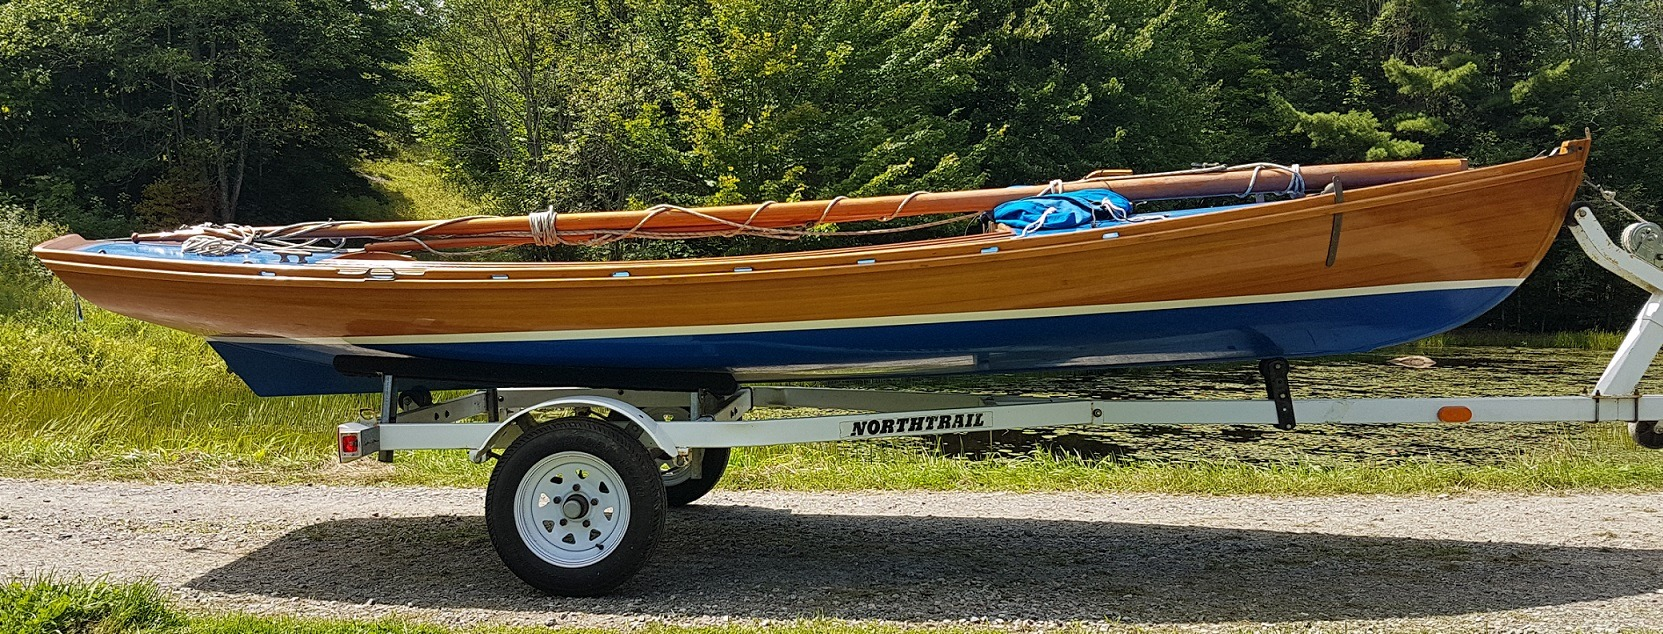 2002 Brackley Boats - Melonseed